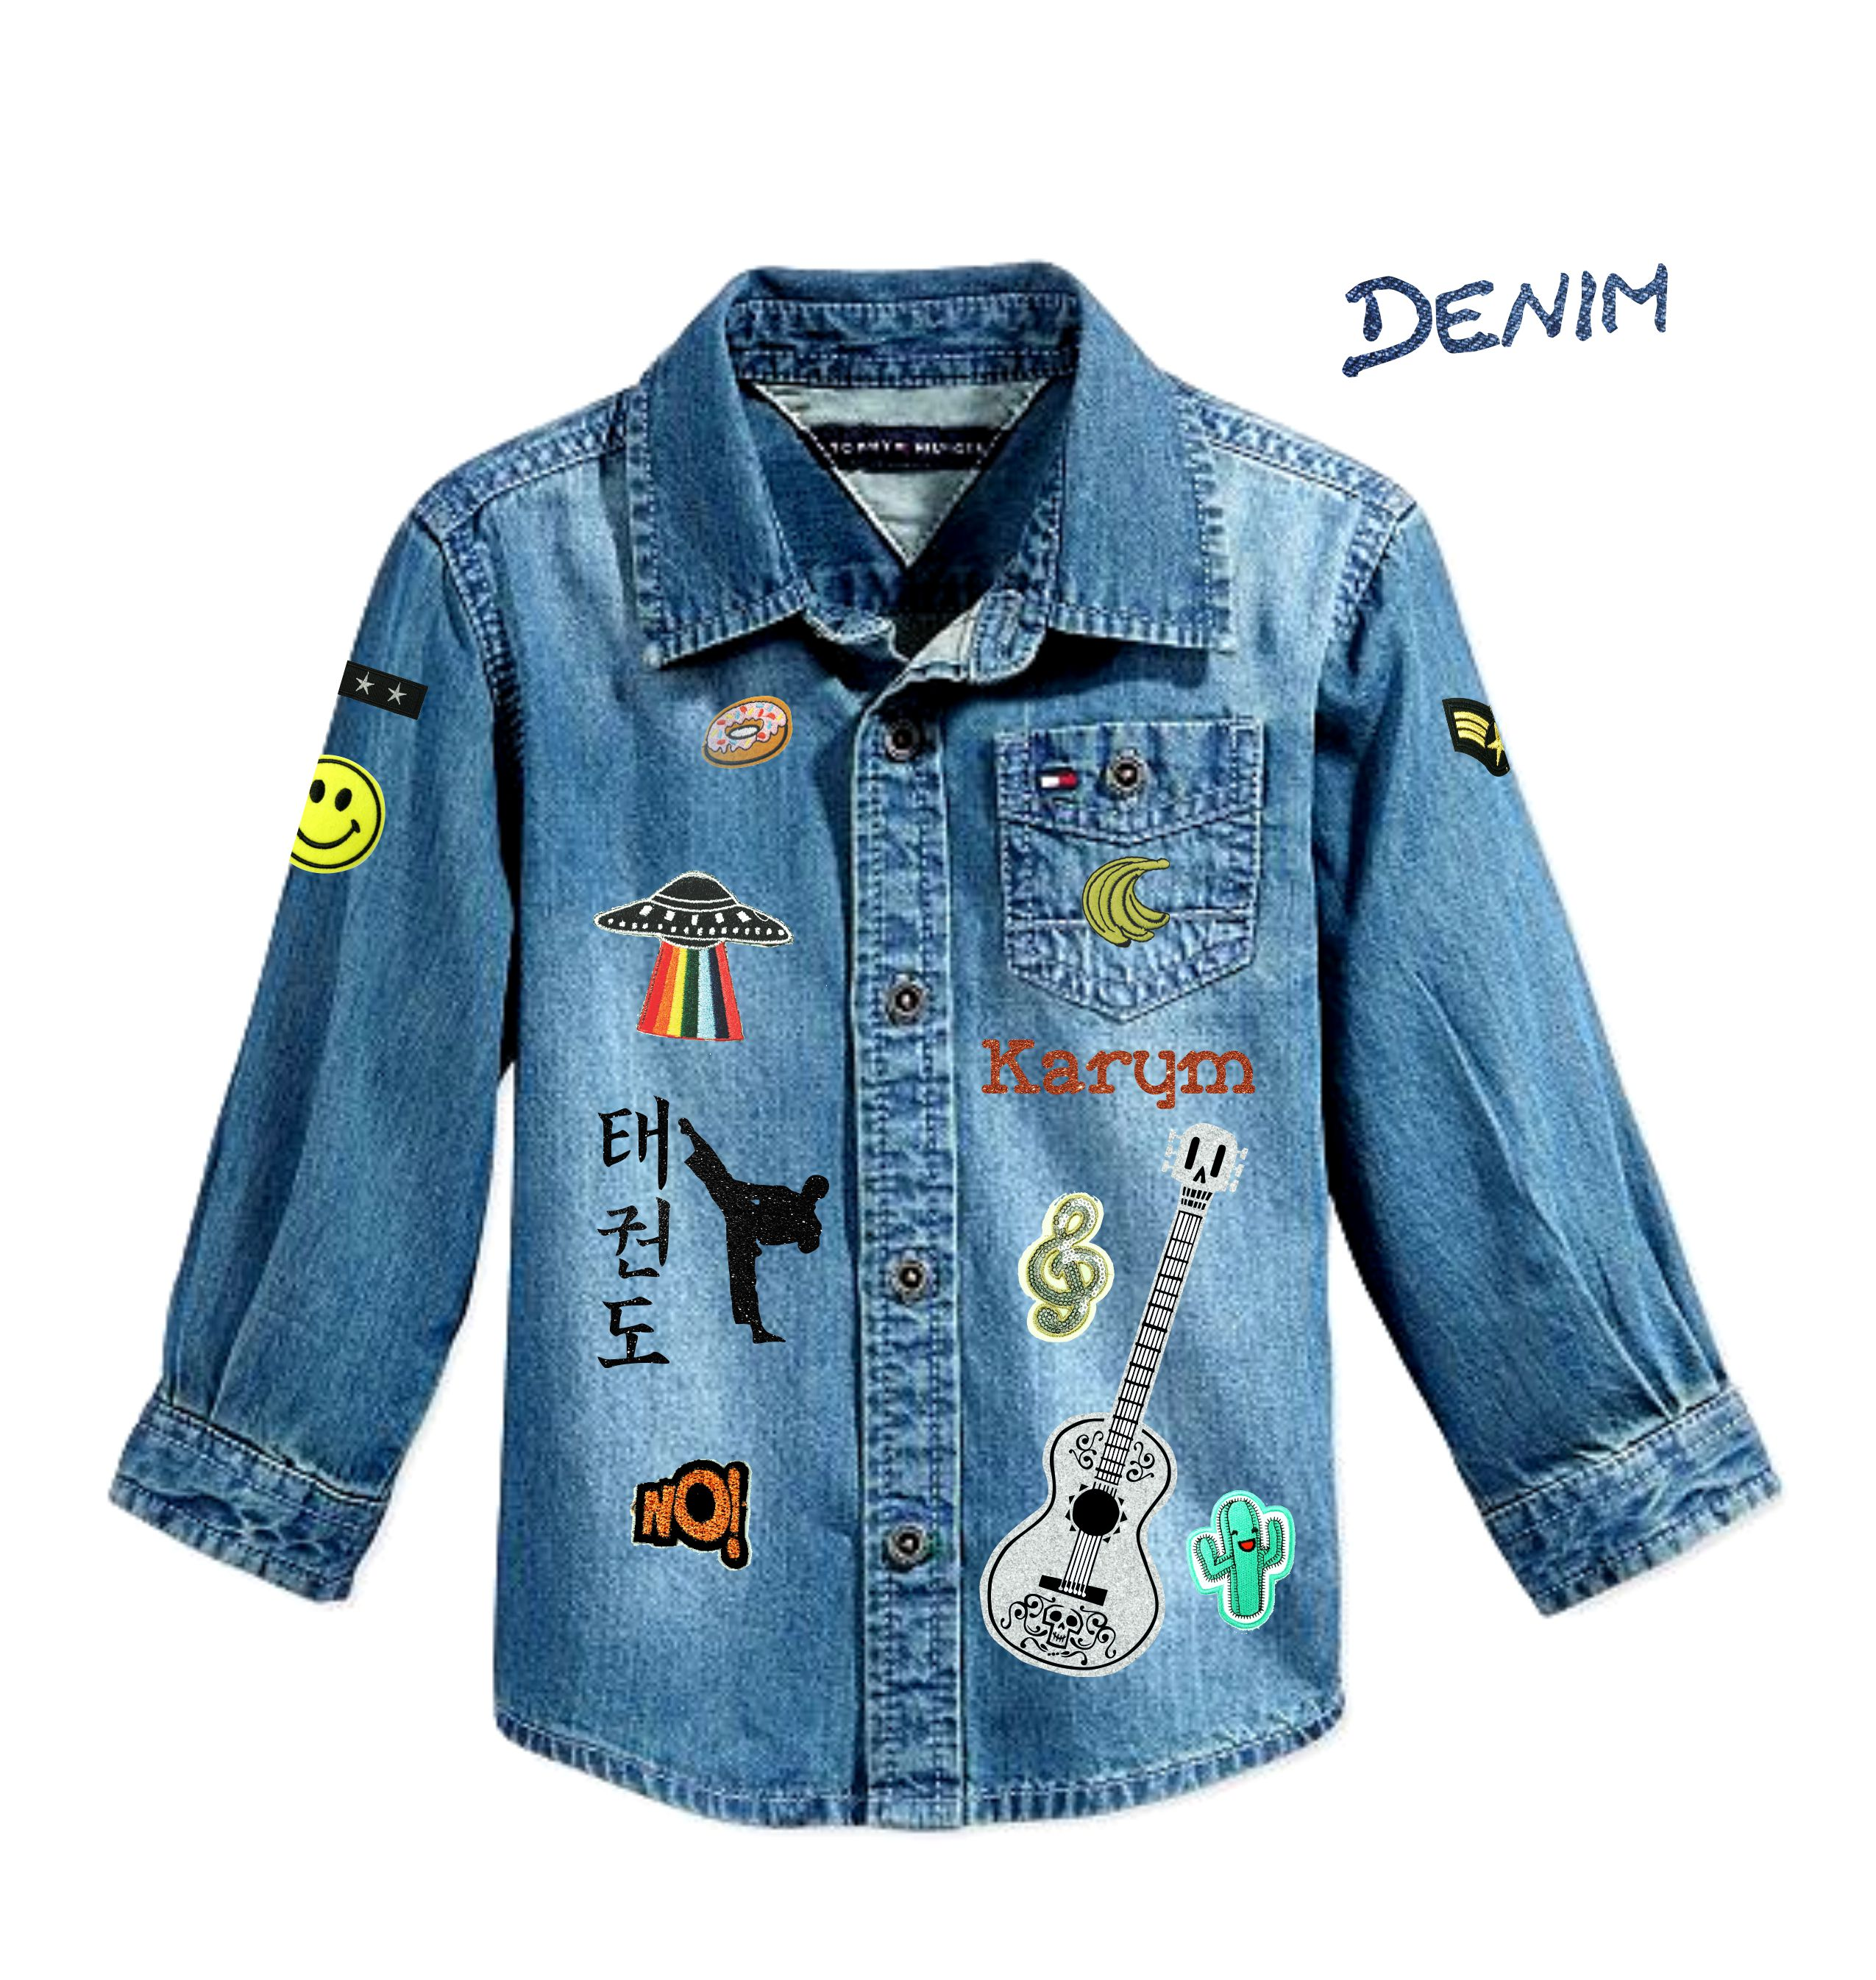 DENIM T SHIRT